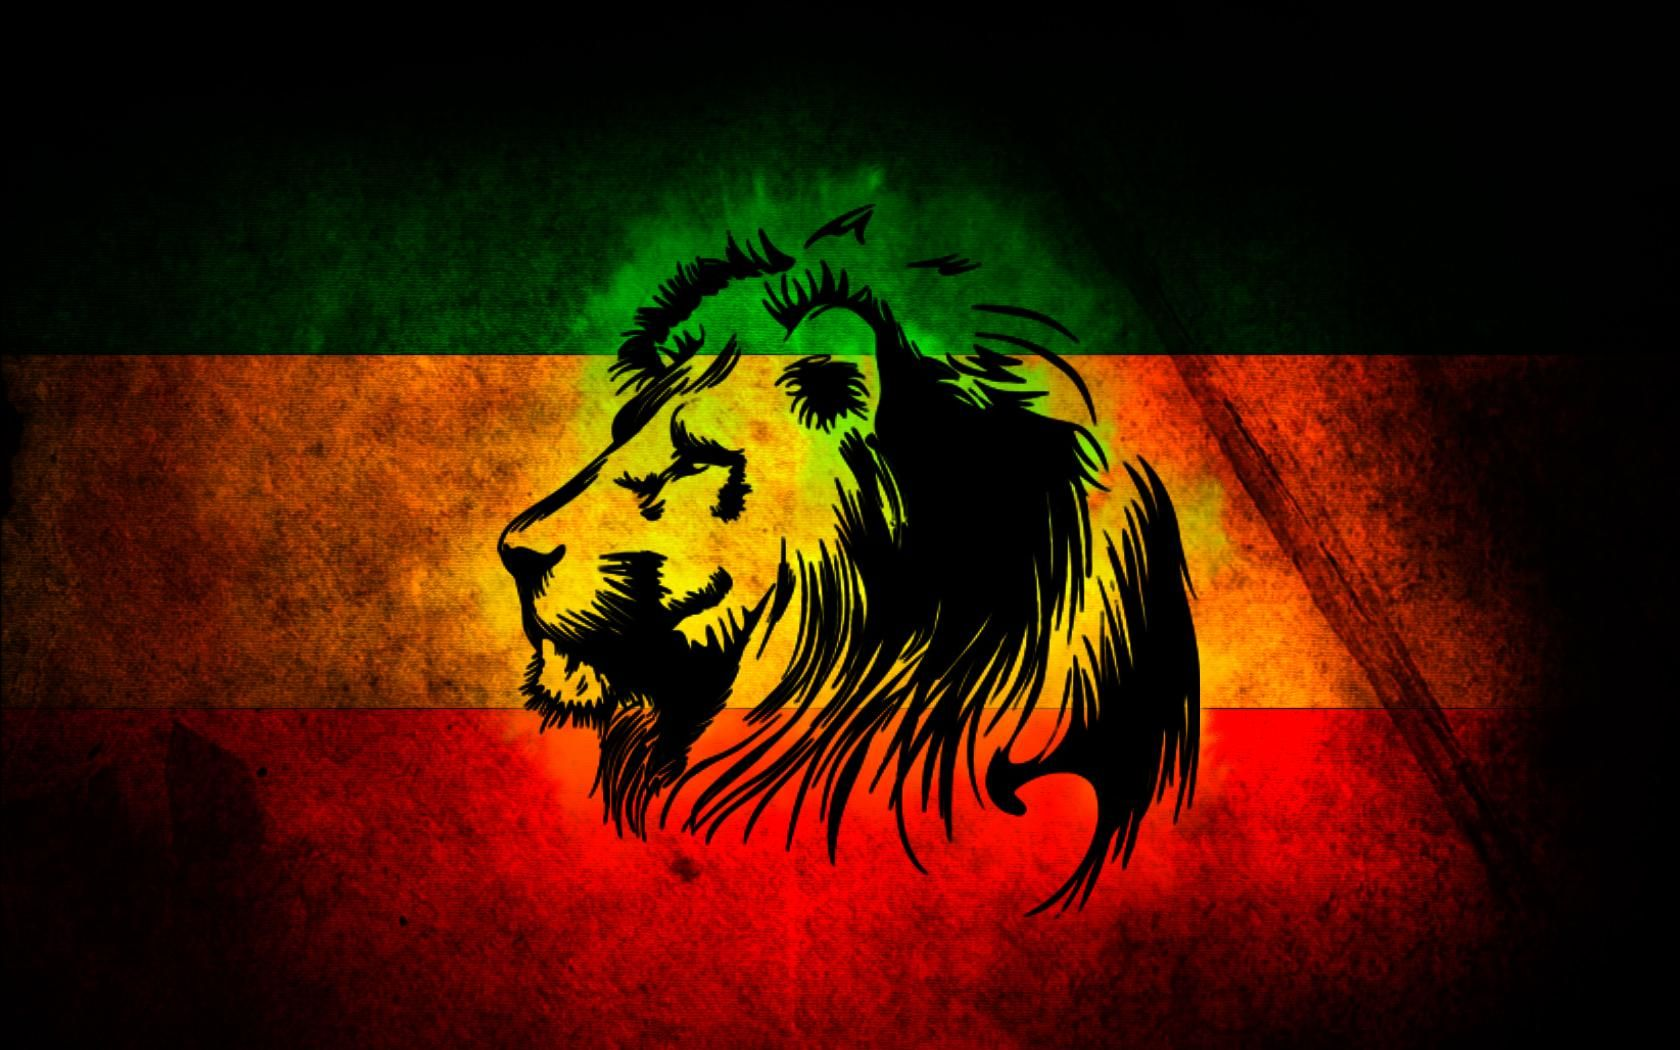 Wallpaper iphone rasta - Rasta Lion Wallpapers Wallpaper Hd Wallpapers Pinterest Lion Wallpaper And Wallpaper